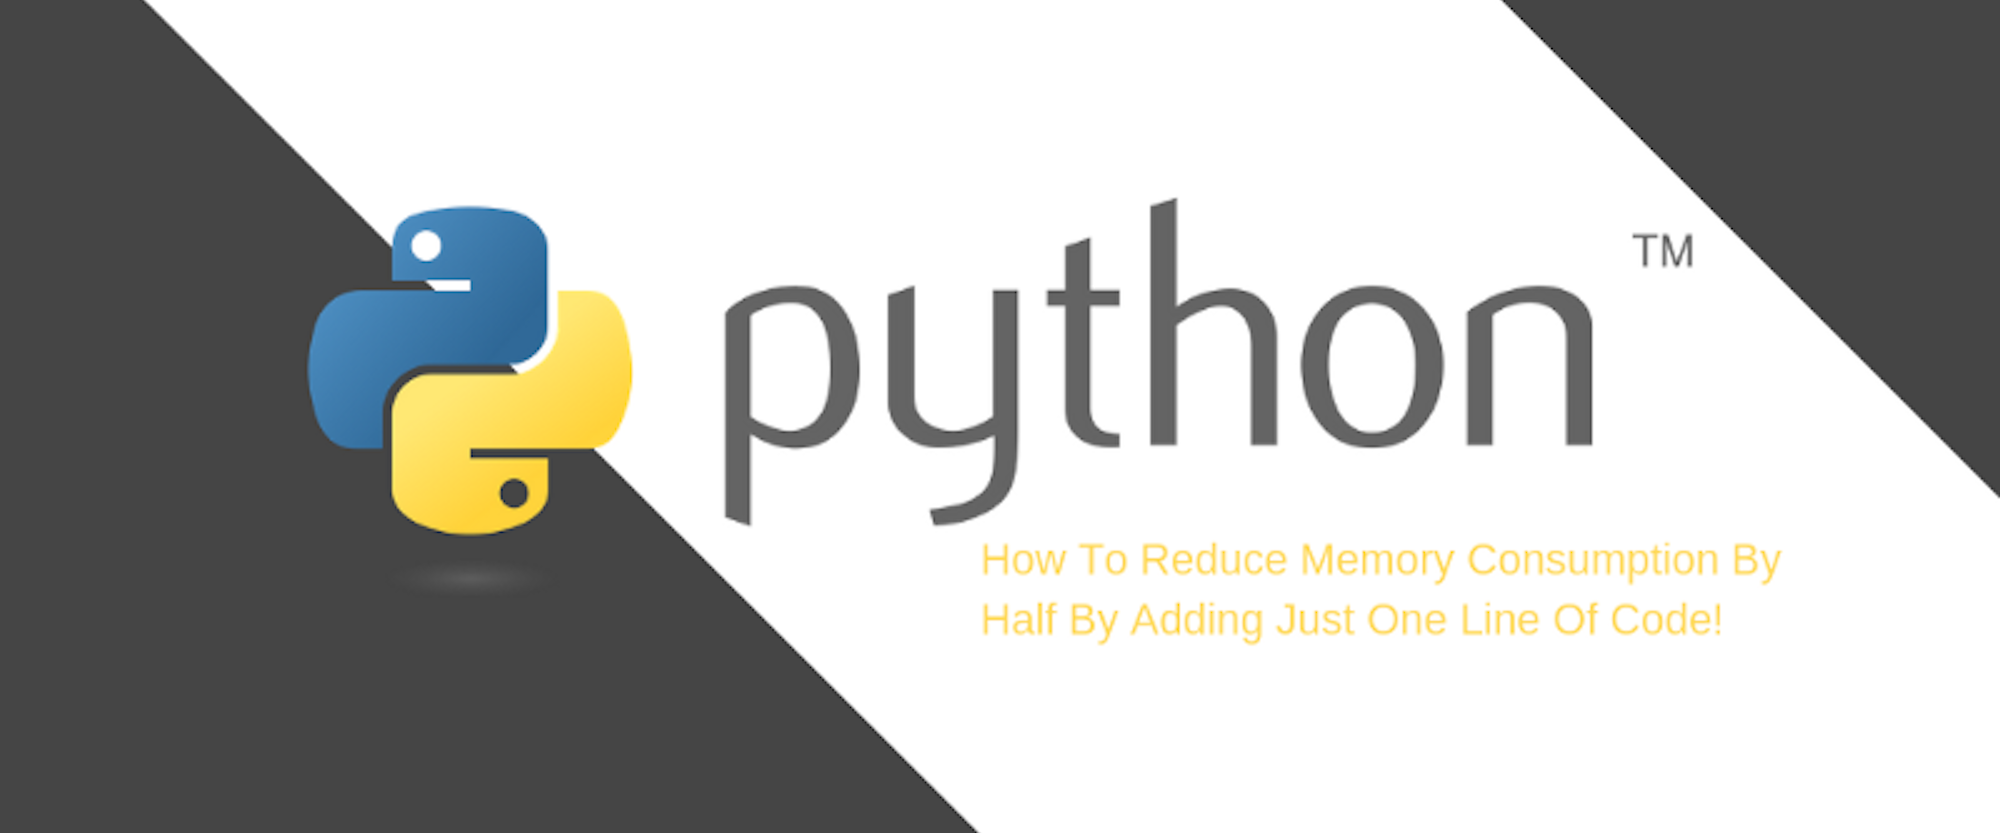 Python: How To Reduce Memory Consumption By Half By Adding Just One Line Of Code?